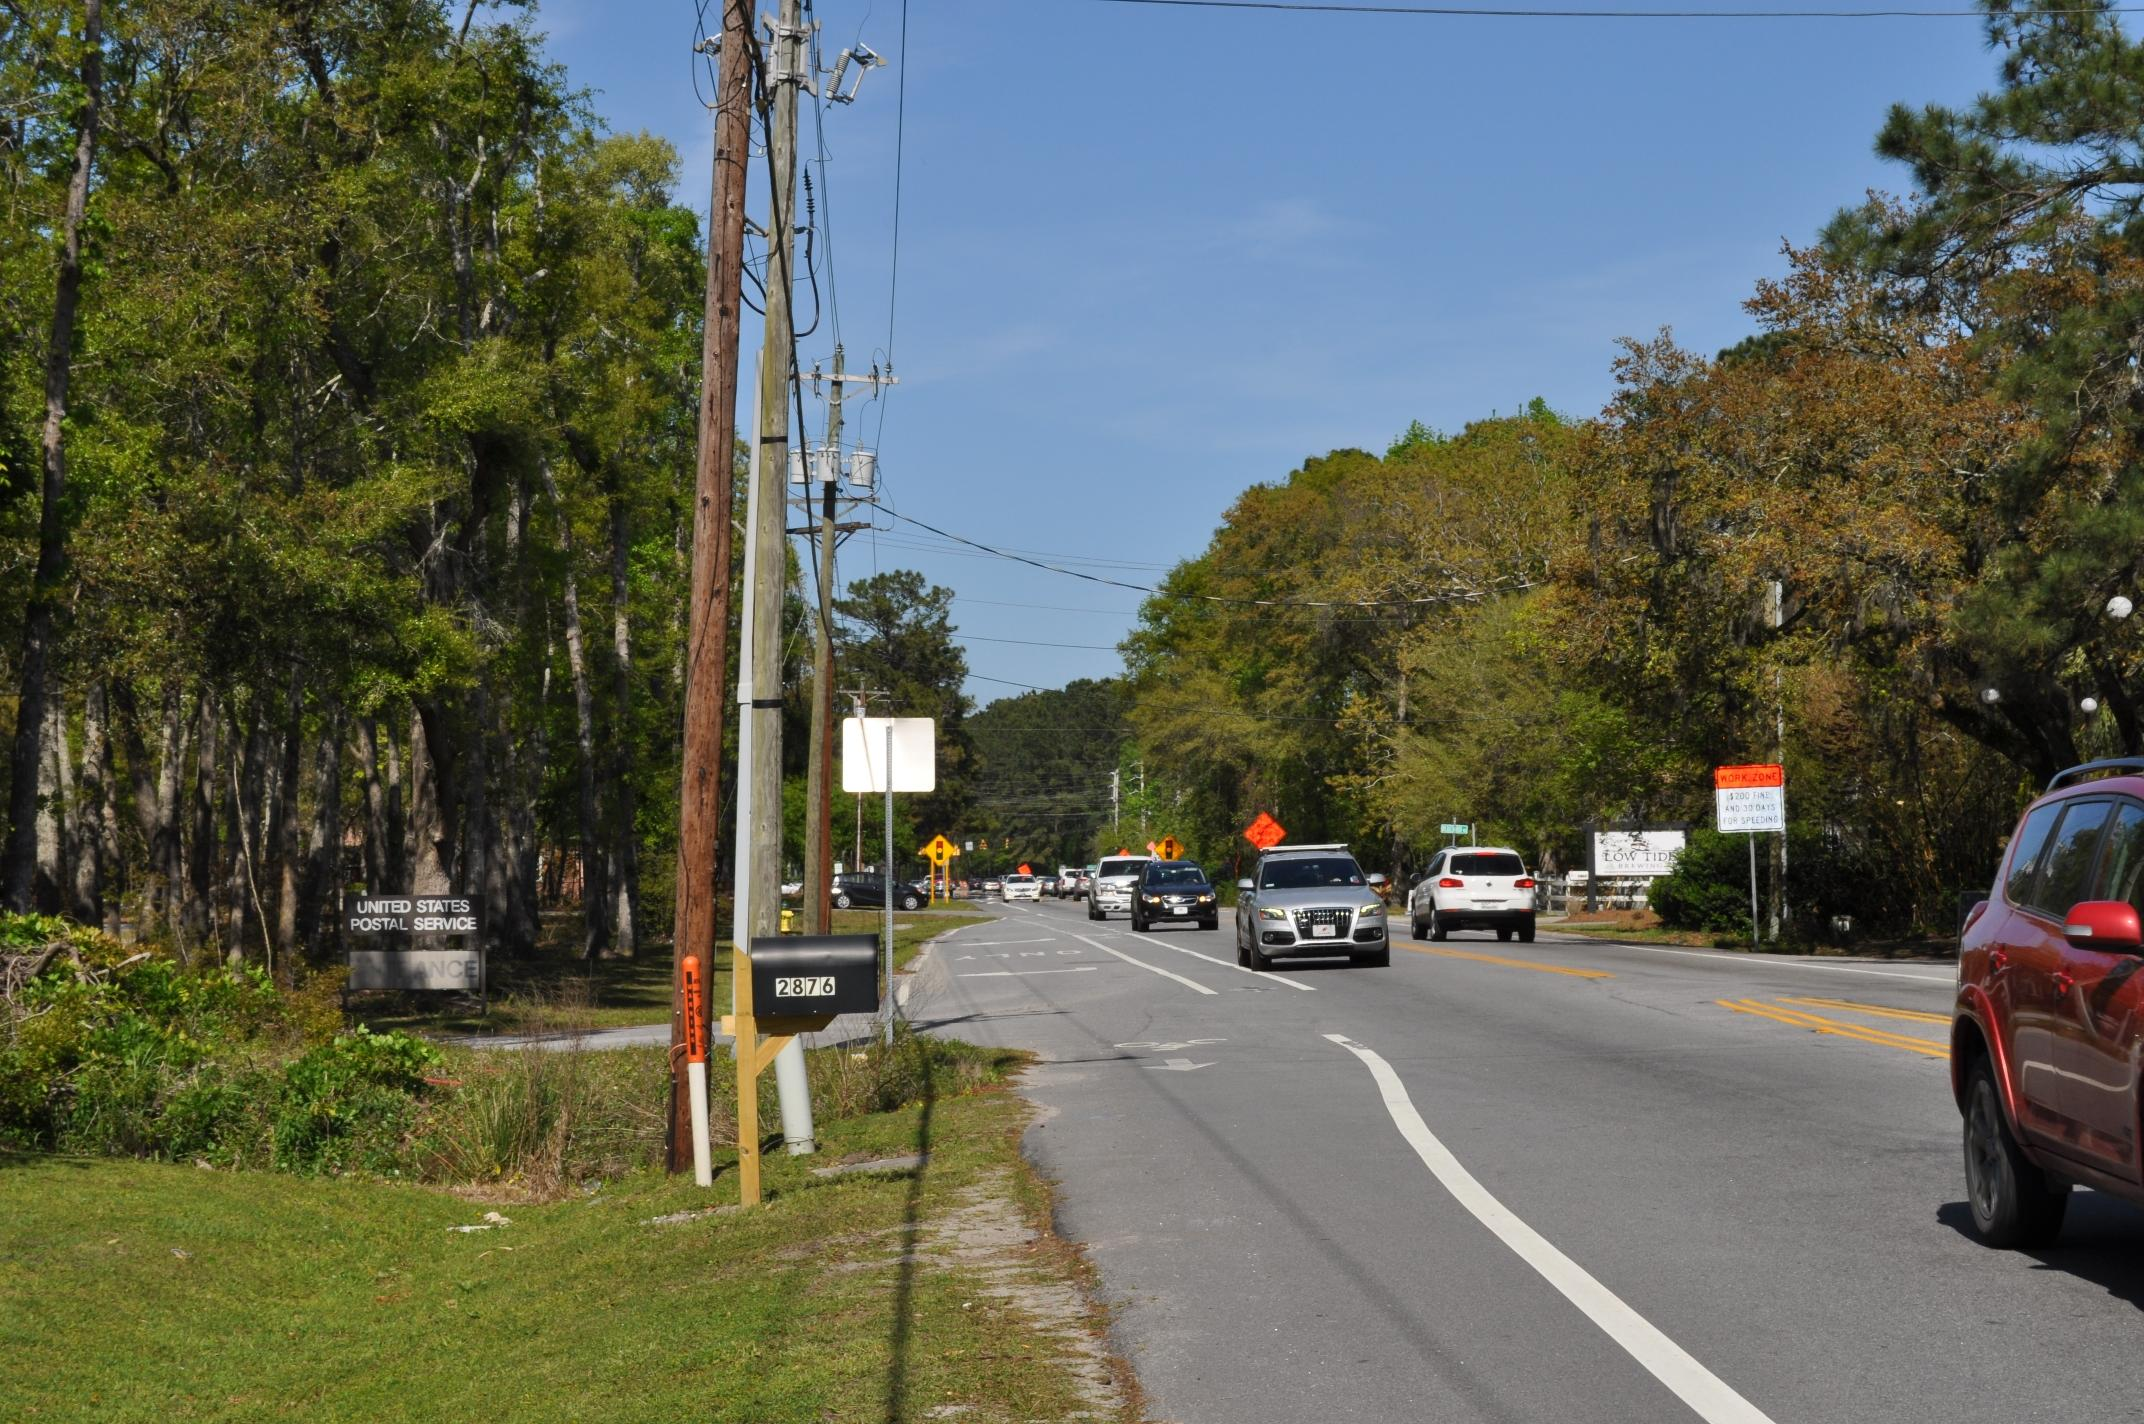 Maybank Highway Johns Island, SC 29455